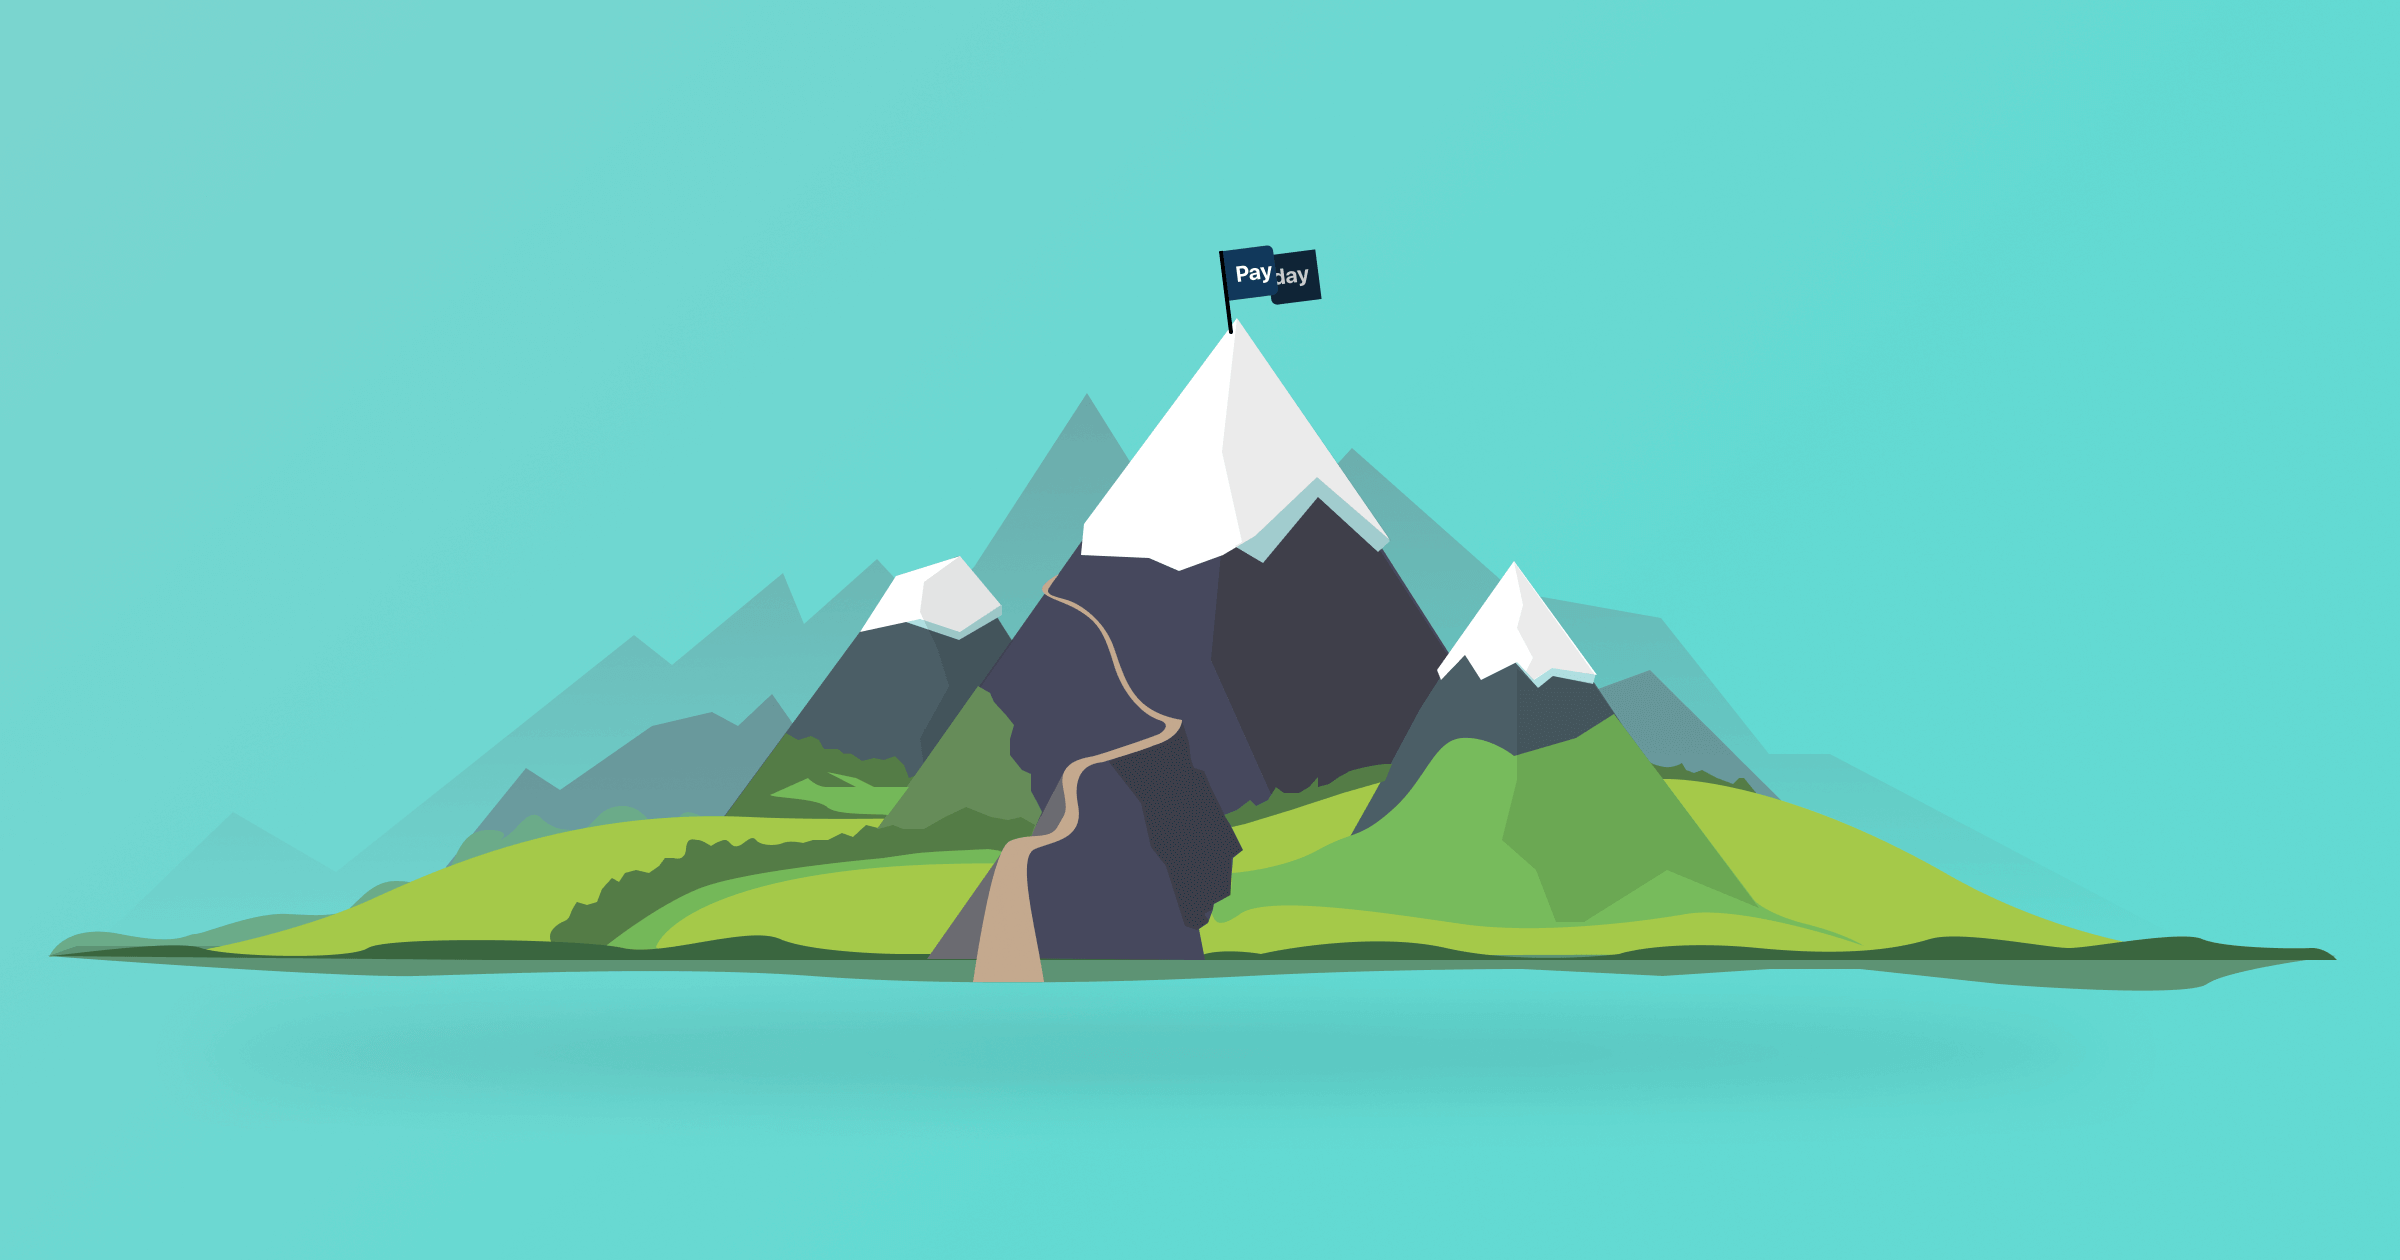 """A trail leading up a mountain, with a flag that says """"Payday"""" at the top of the mountain."""